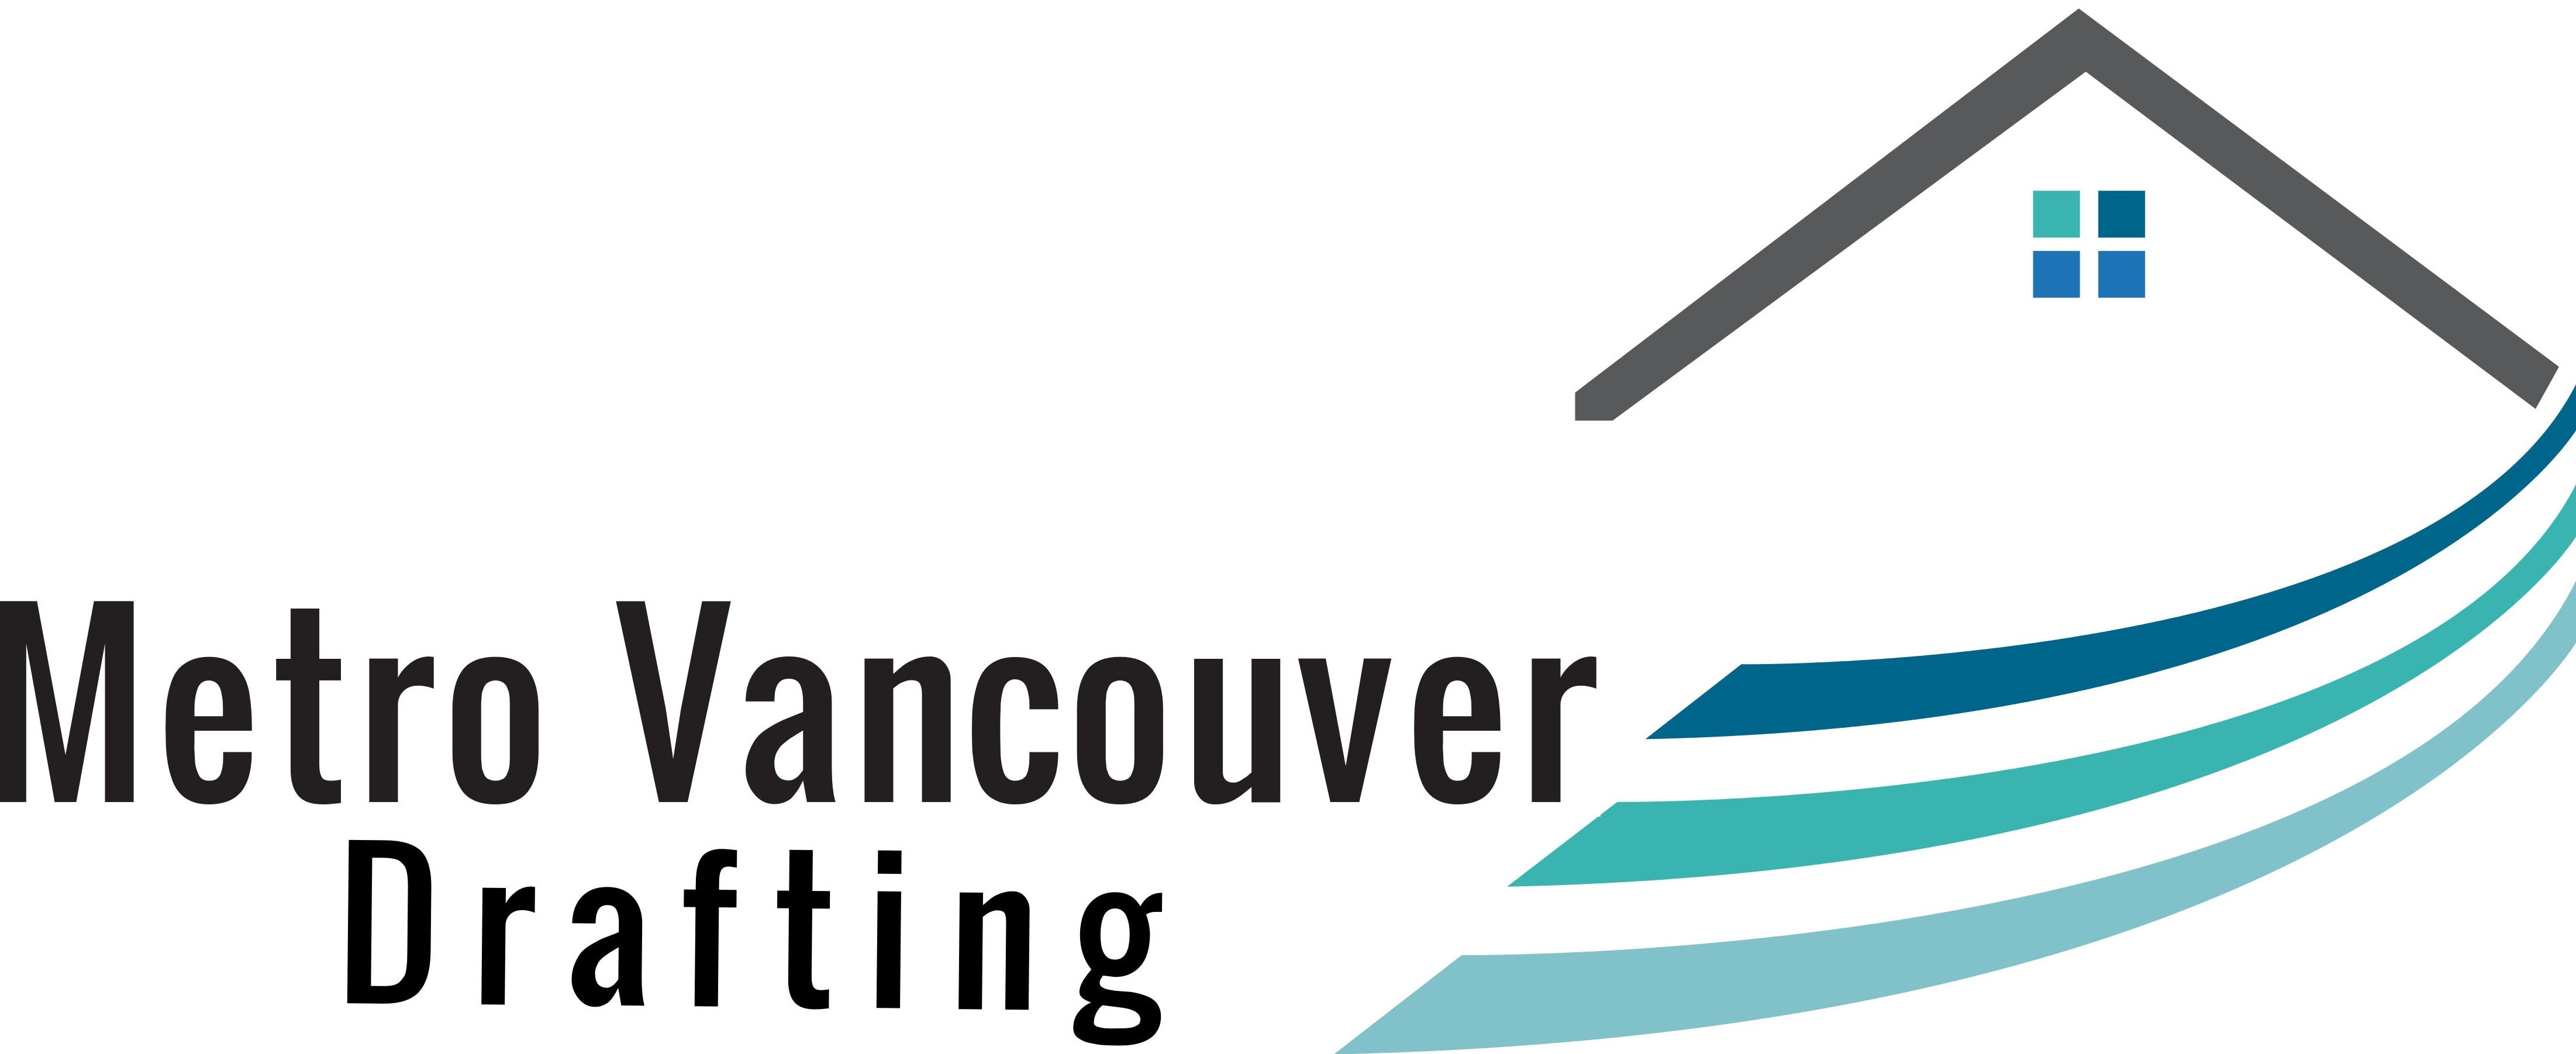 Metro Vancouver Drafting S